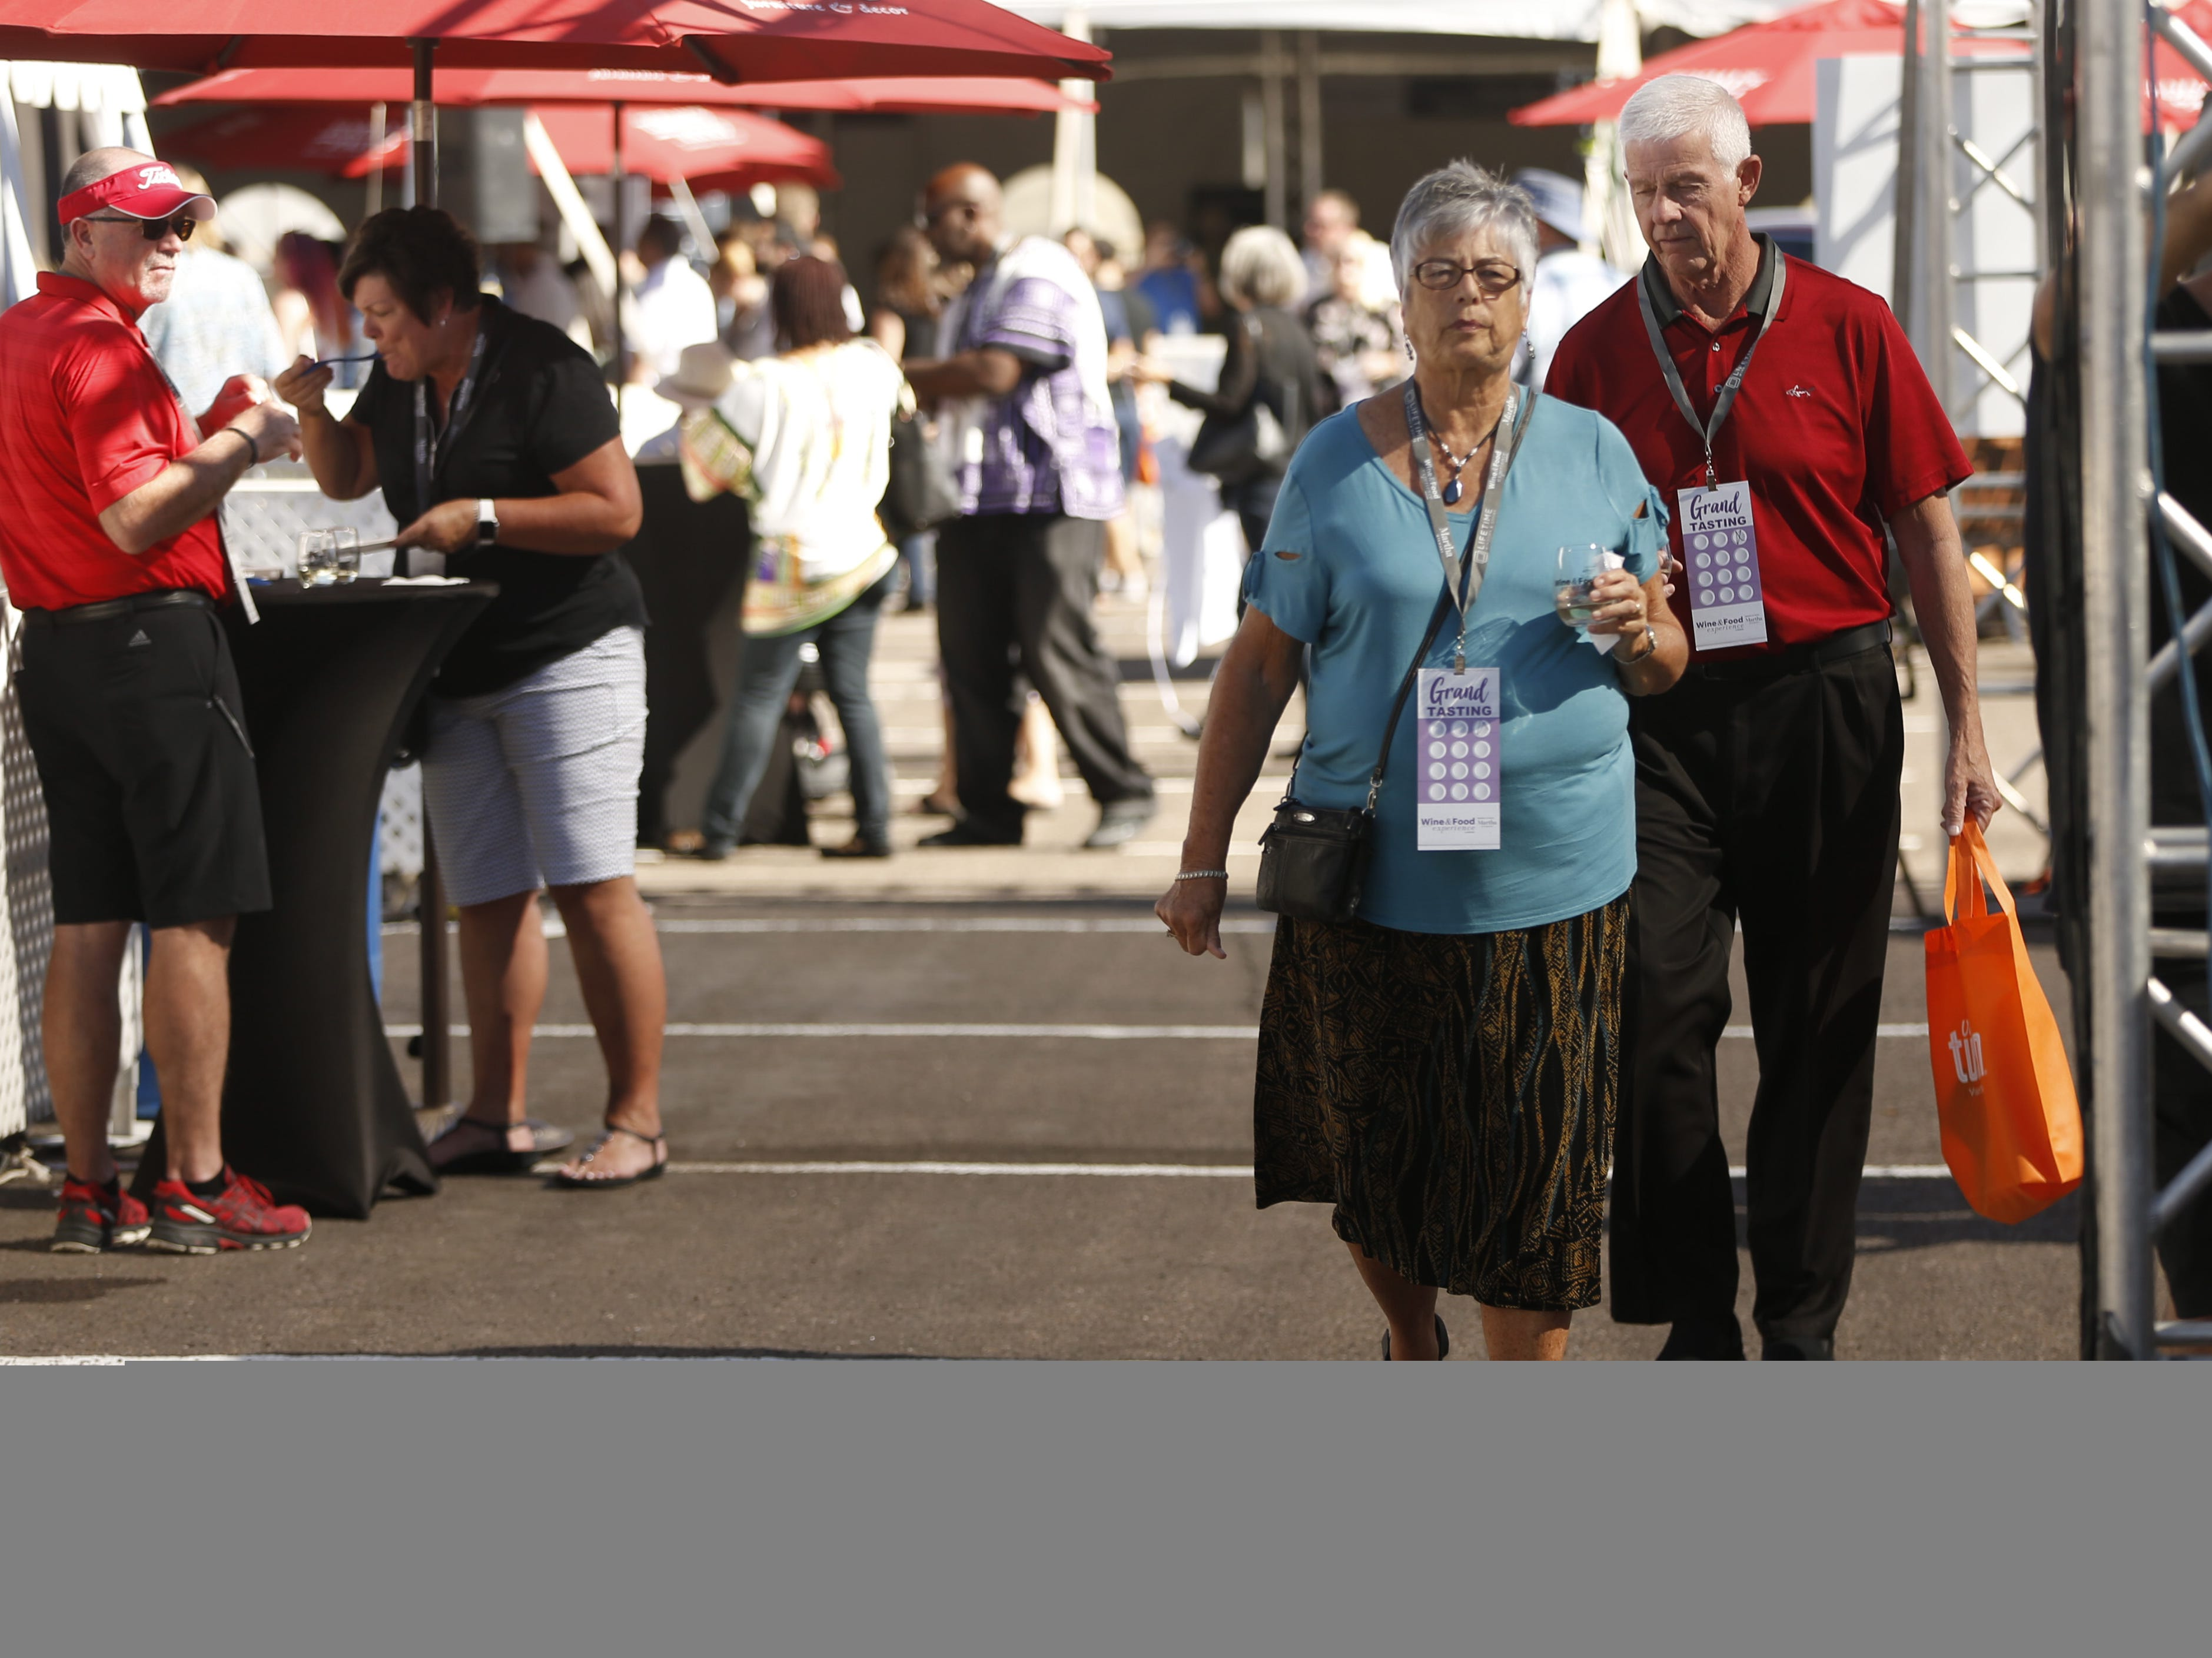 Guests make their way in the shade during the azcentral Wine & Food Experience at WestWorld of Scottsdale, Ariz. on Saturday, Nov. 3, 2018.